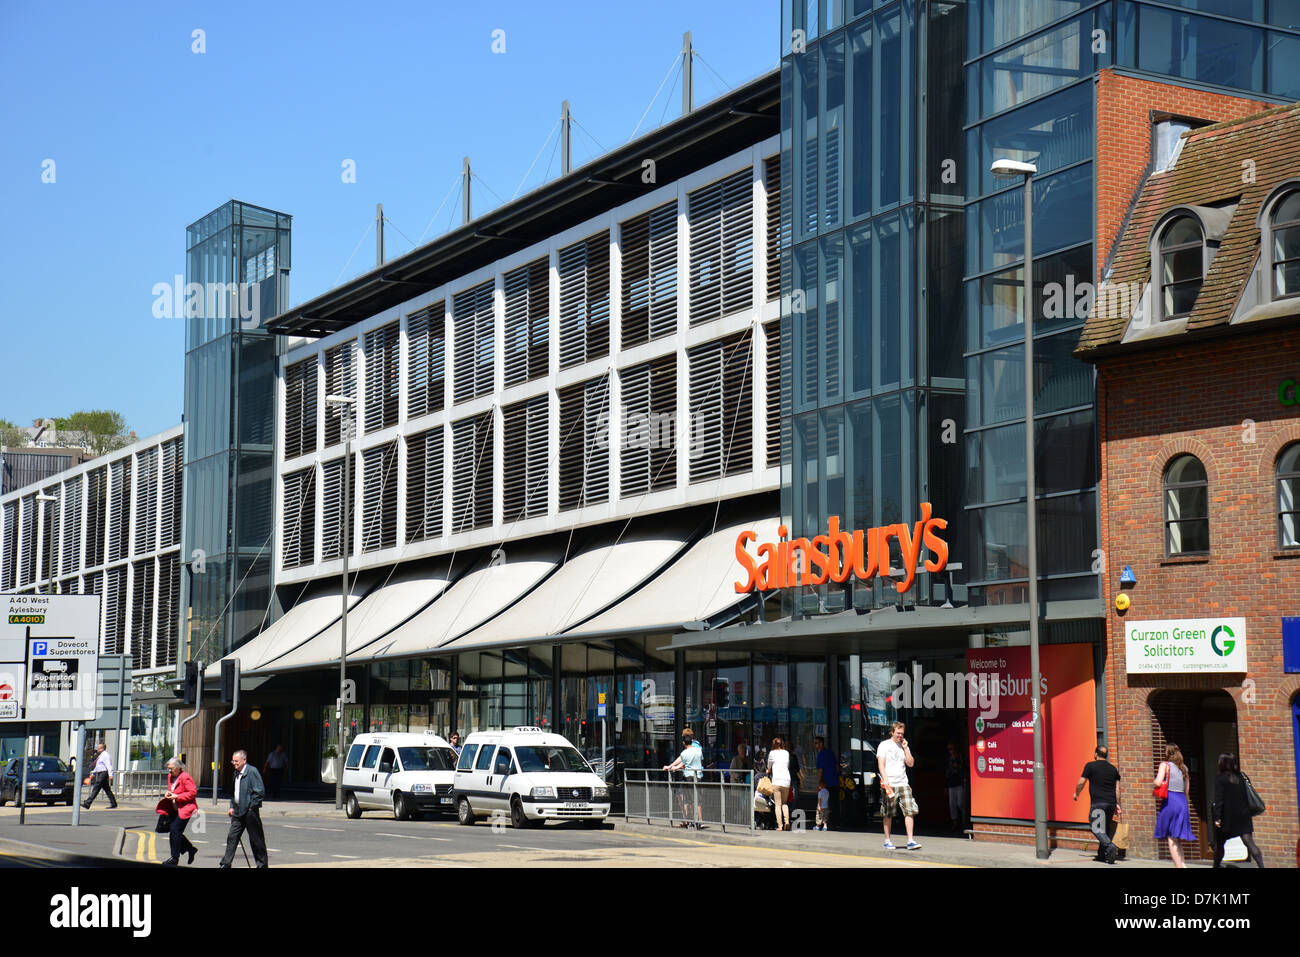 Marvelous Sainsburys Sainsburys Town Center Centre Supermarket Supermarkets  With Goodlooking  Entrance To Sainsburys Supermarket Oxford Road High Wycombe  Buckinghamshire England United With Captivating Fairmont Gardens Also Q Gardens Zygi In Addition Savill Gardens Windsor And The Garden Nursery As Well As Garden Beetle Additionally Kensington Roof Gardens Entry Fee From Alamycom With   Goodlooking Sainsburys Sainsburys Town Center Centre Supermarket Supermarkets  With Captivating  Entrance To Sainsburys Supermarket Oxford Road High Wycombe  Buckinghamshire England United And Marvelous Fairmont Gardens Also Q Gardens Zygi In Addition Savill Gardens Windsor From Alamycom